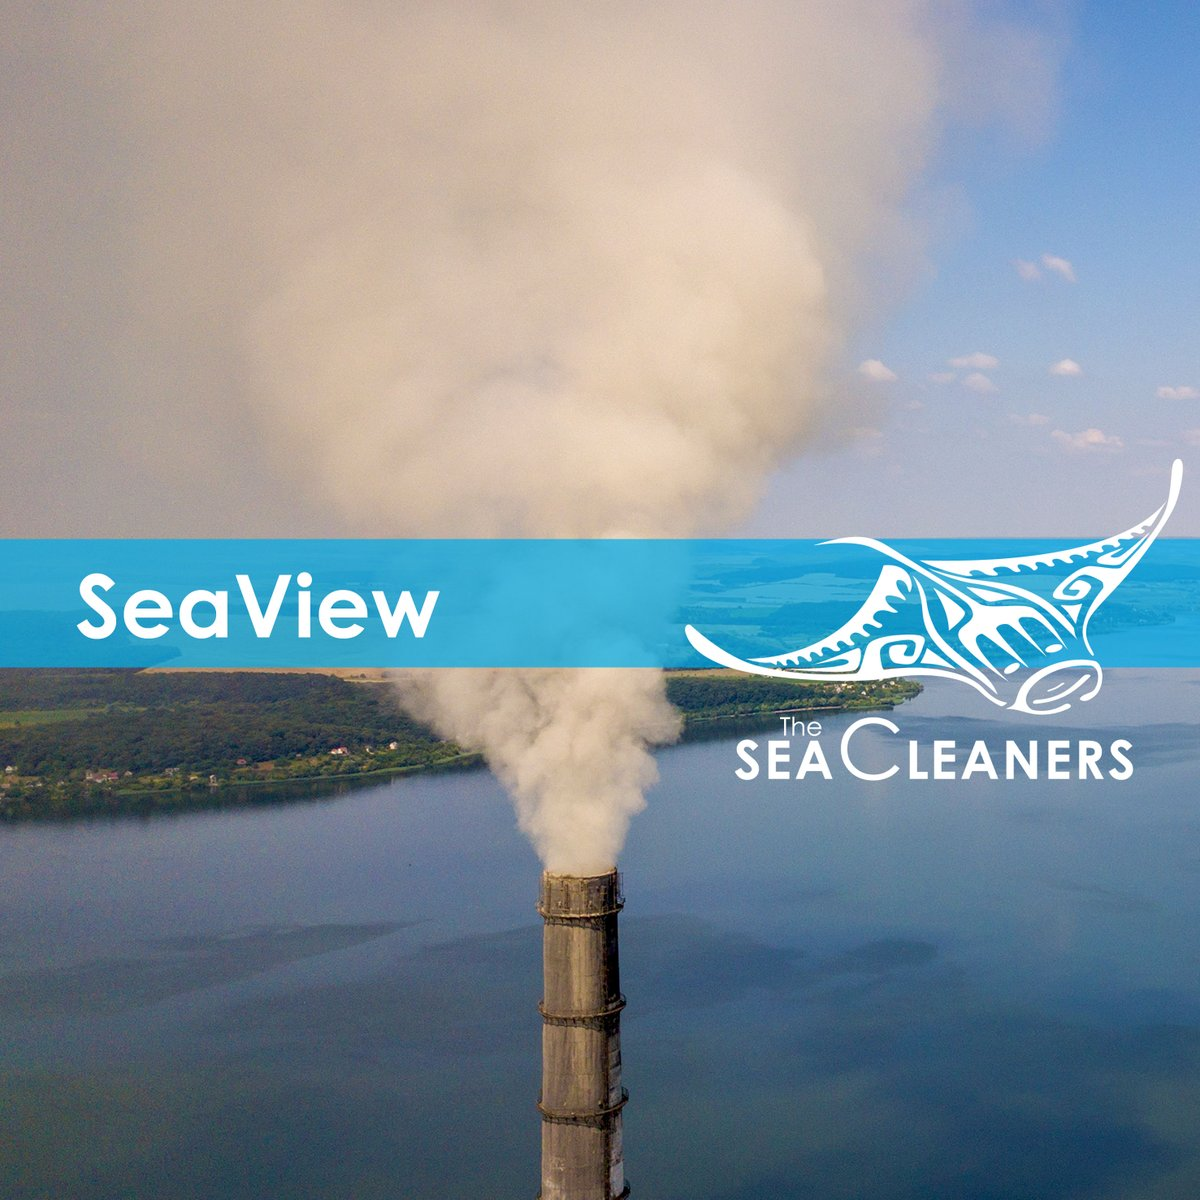 theseacleaners photo